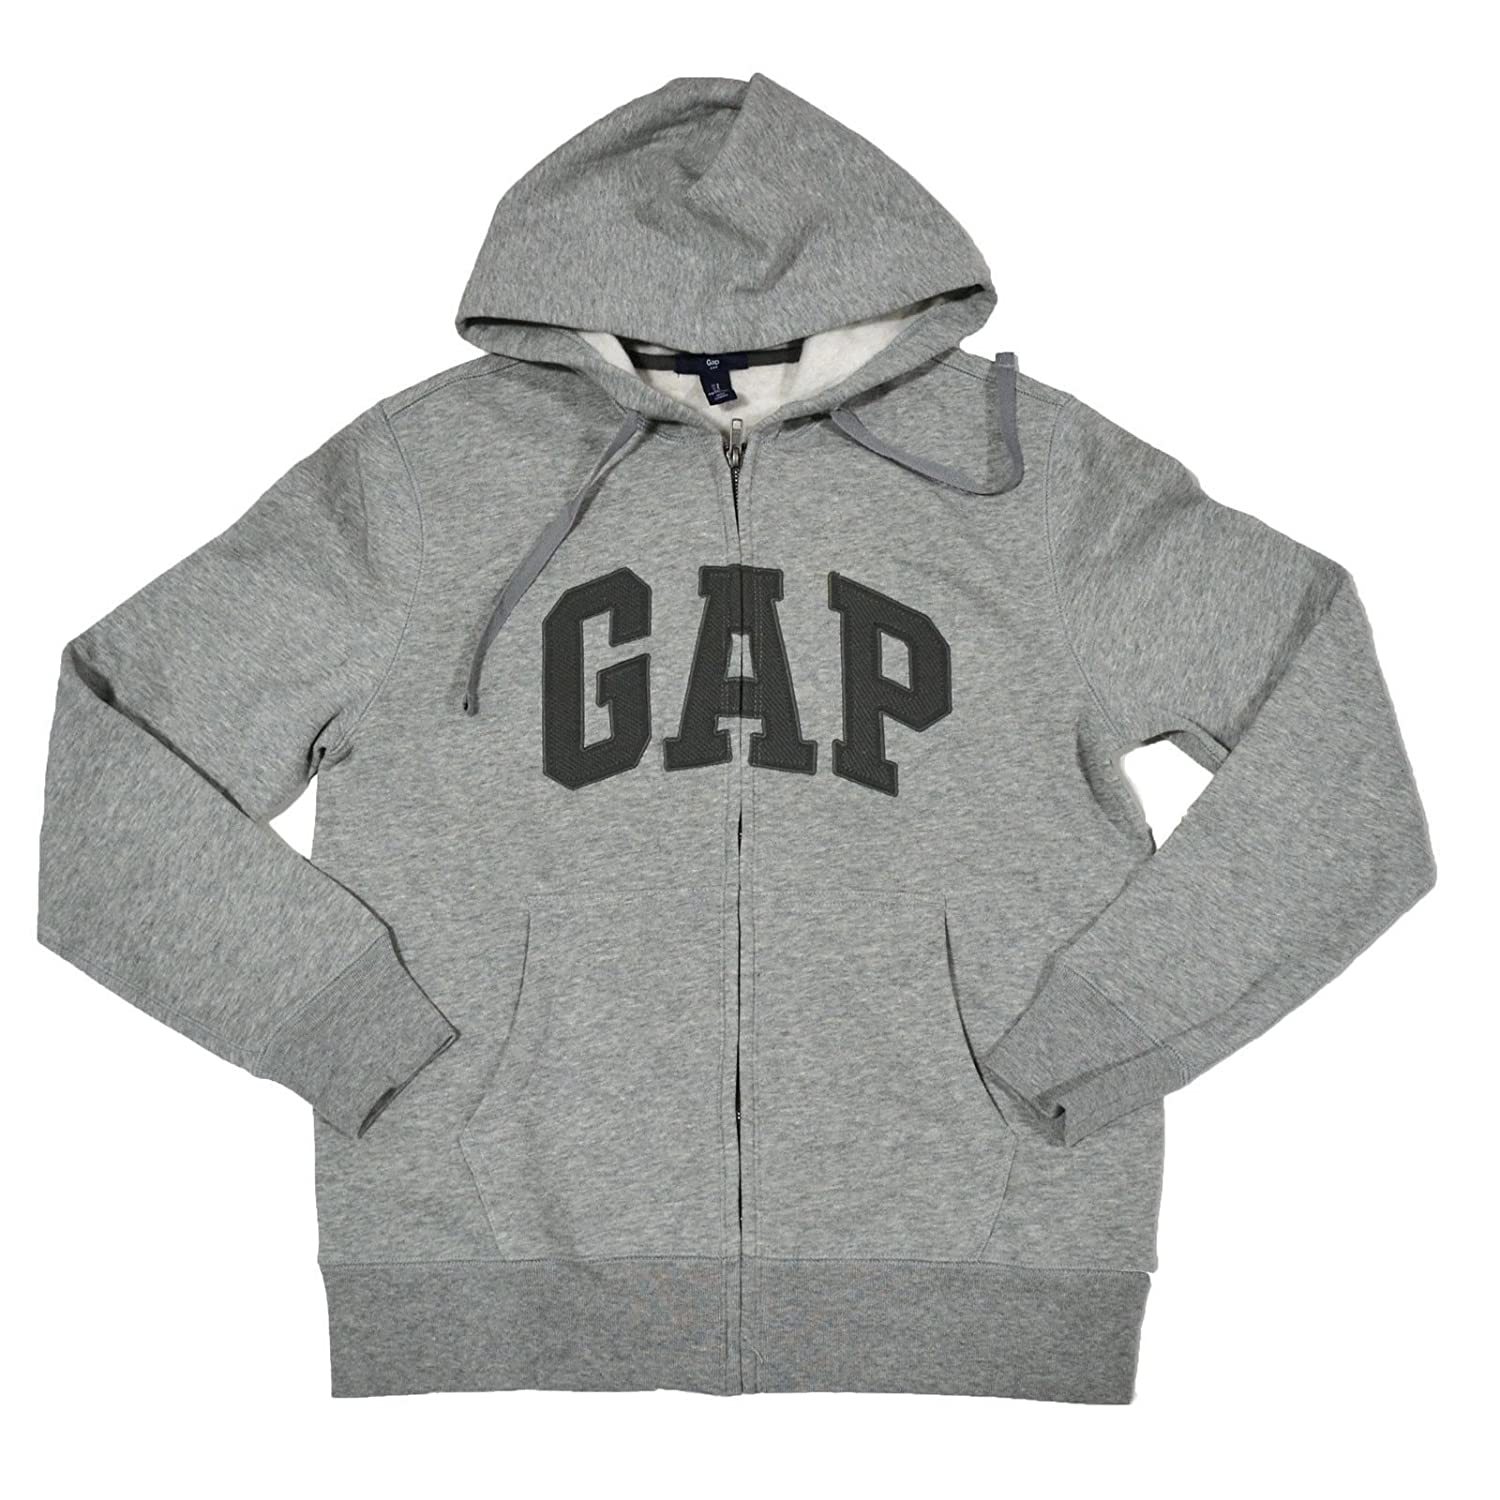 GAP Mens Fleece Arch Logo Full Zip Hoodie запчасти для мобильных телефонов afti explay advance tv sky sky plus bm3 82 0401460 00